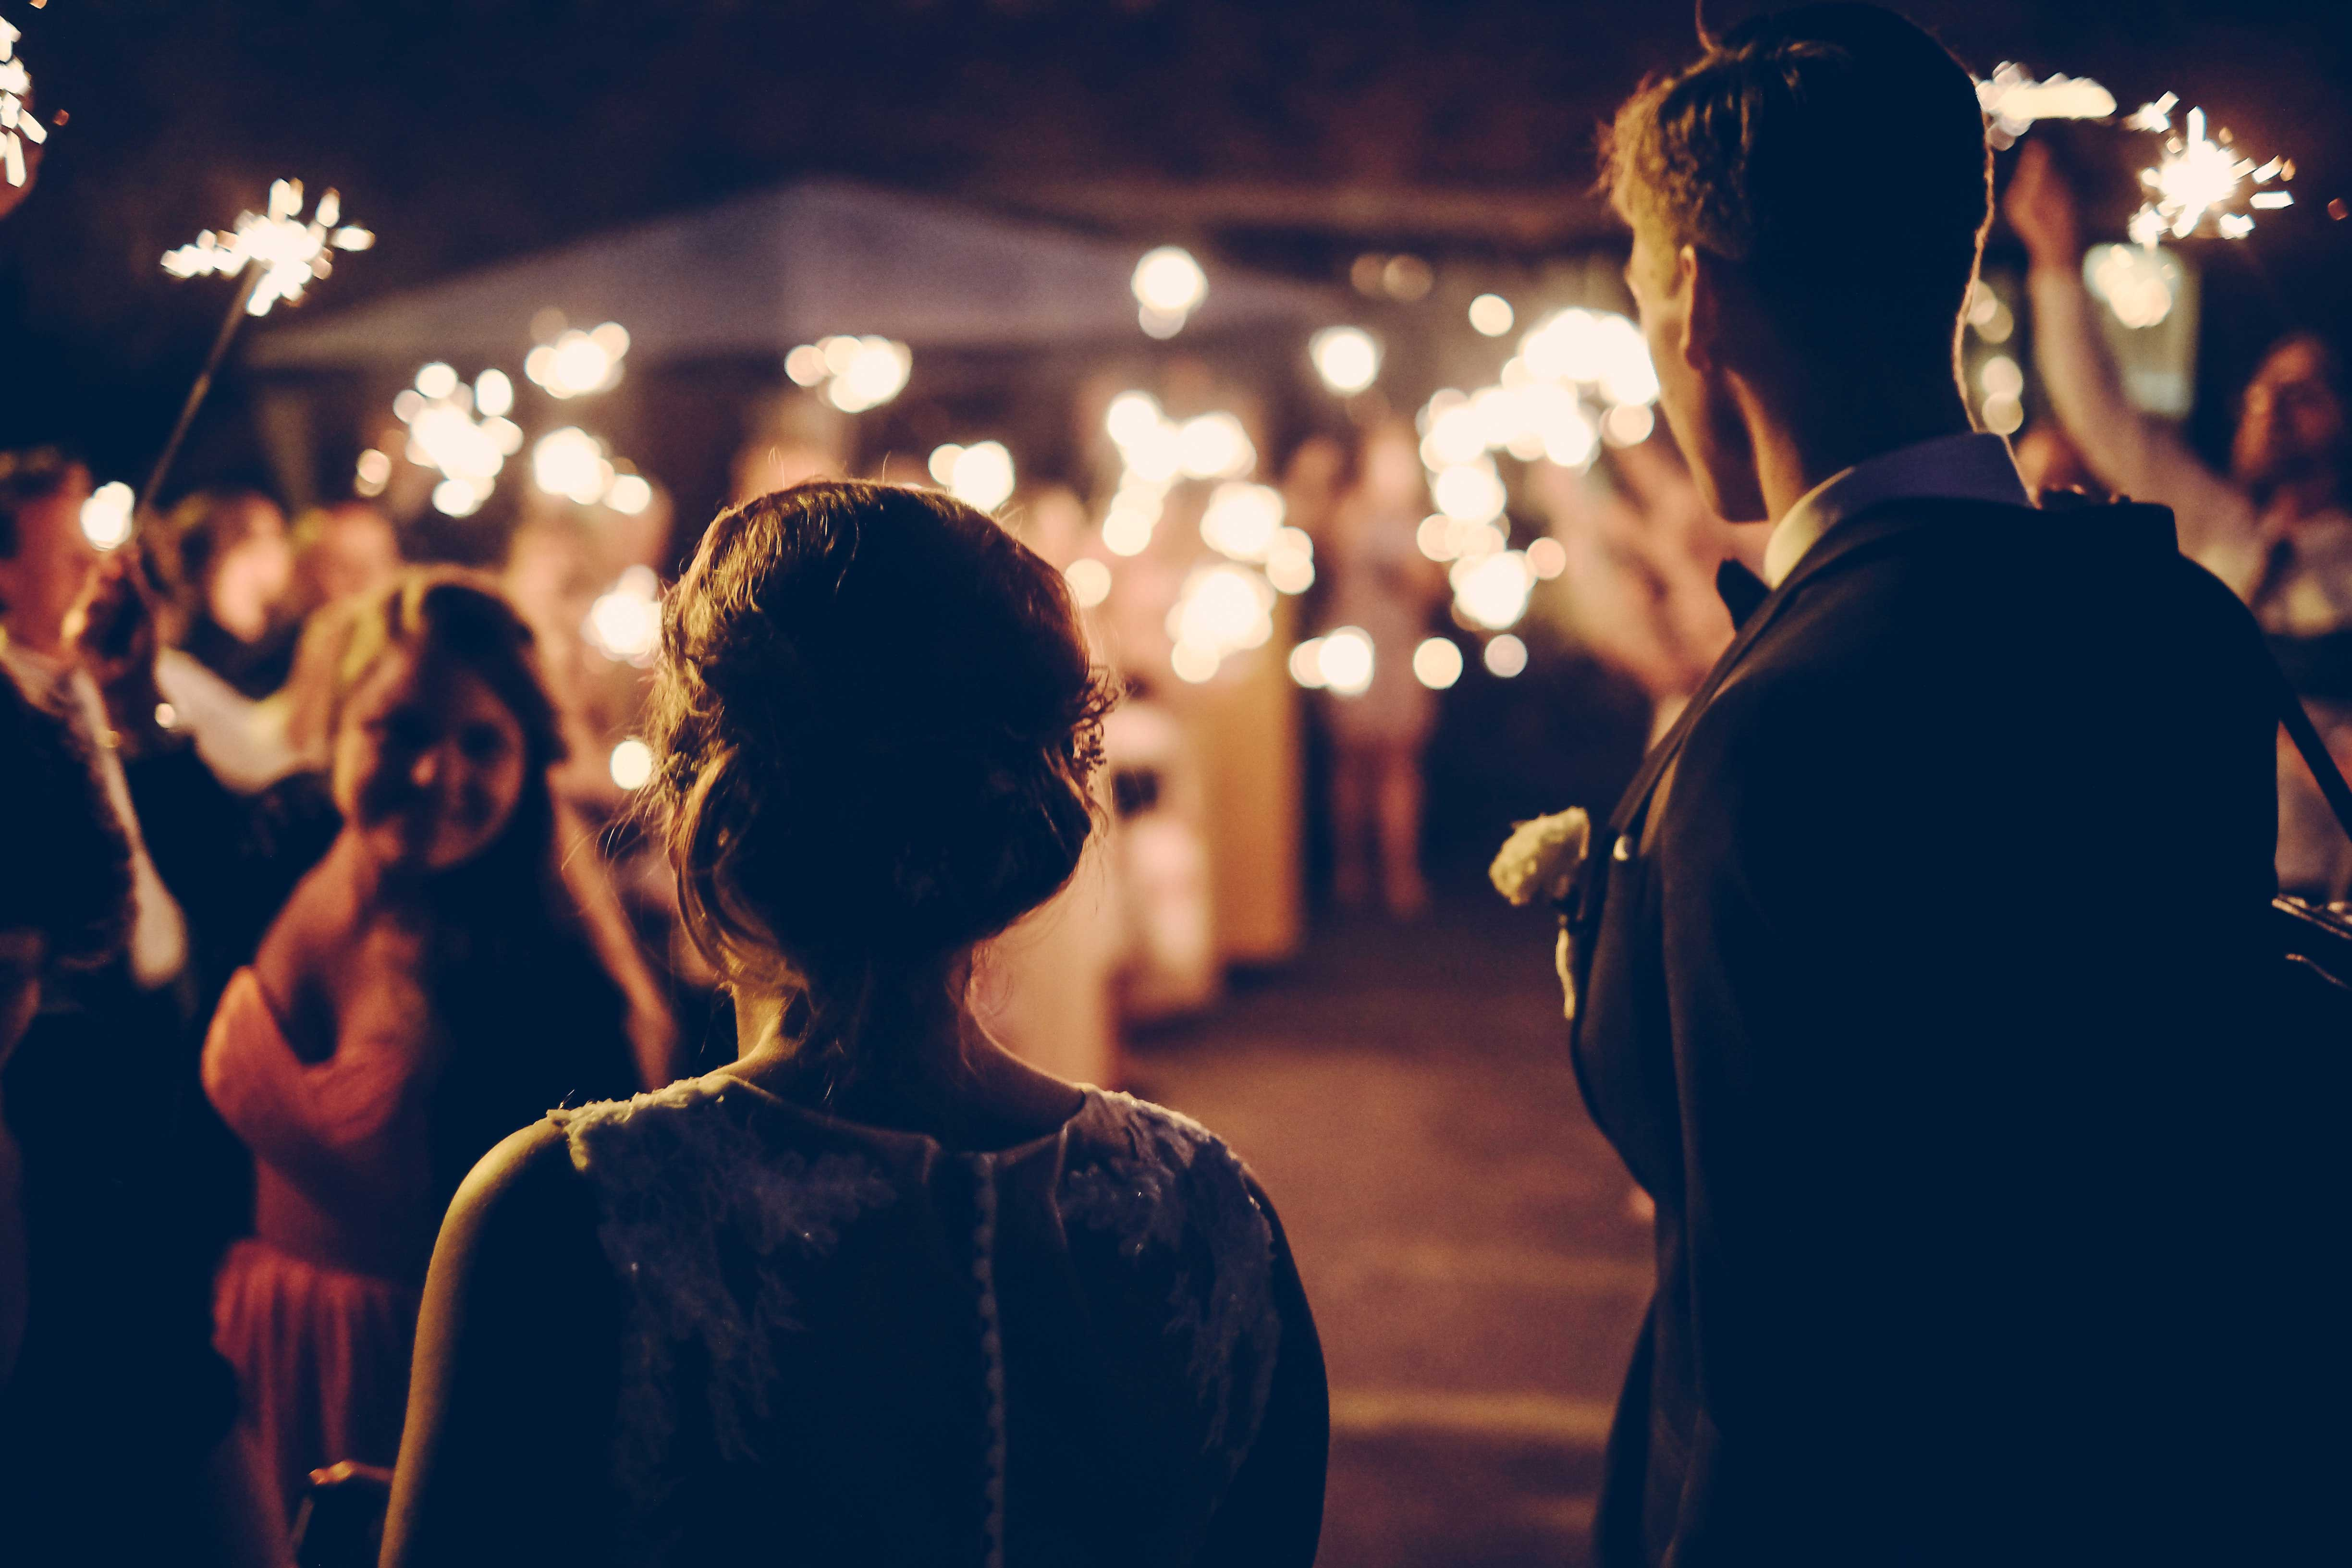 after-wedding-checklist-what-to-do-after-wedding-10